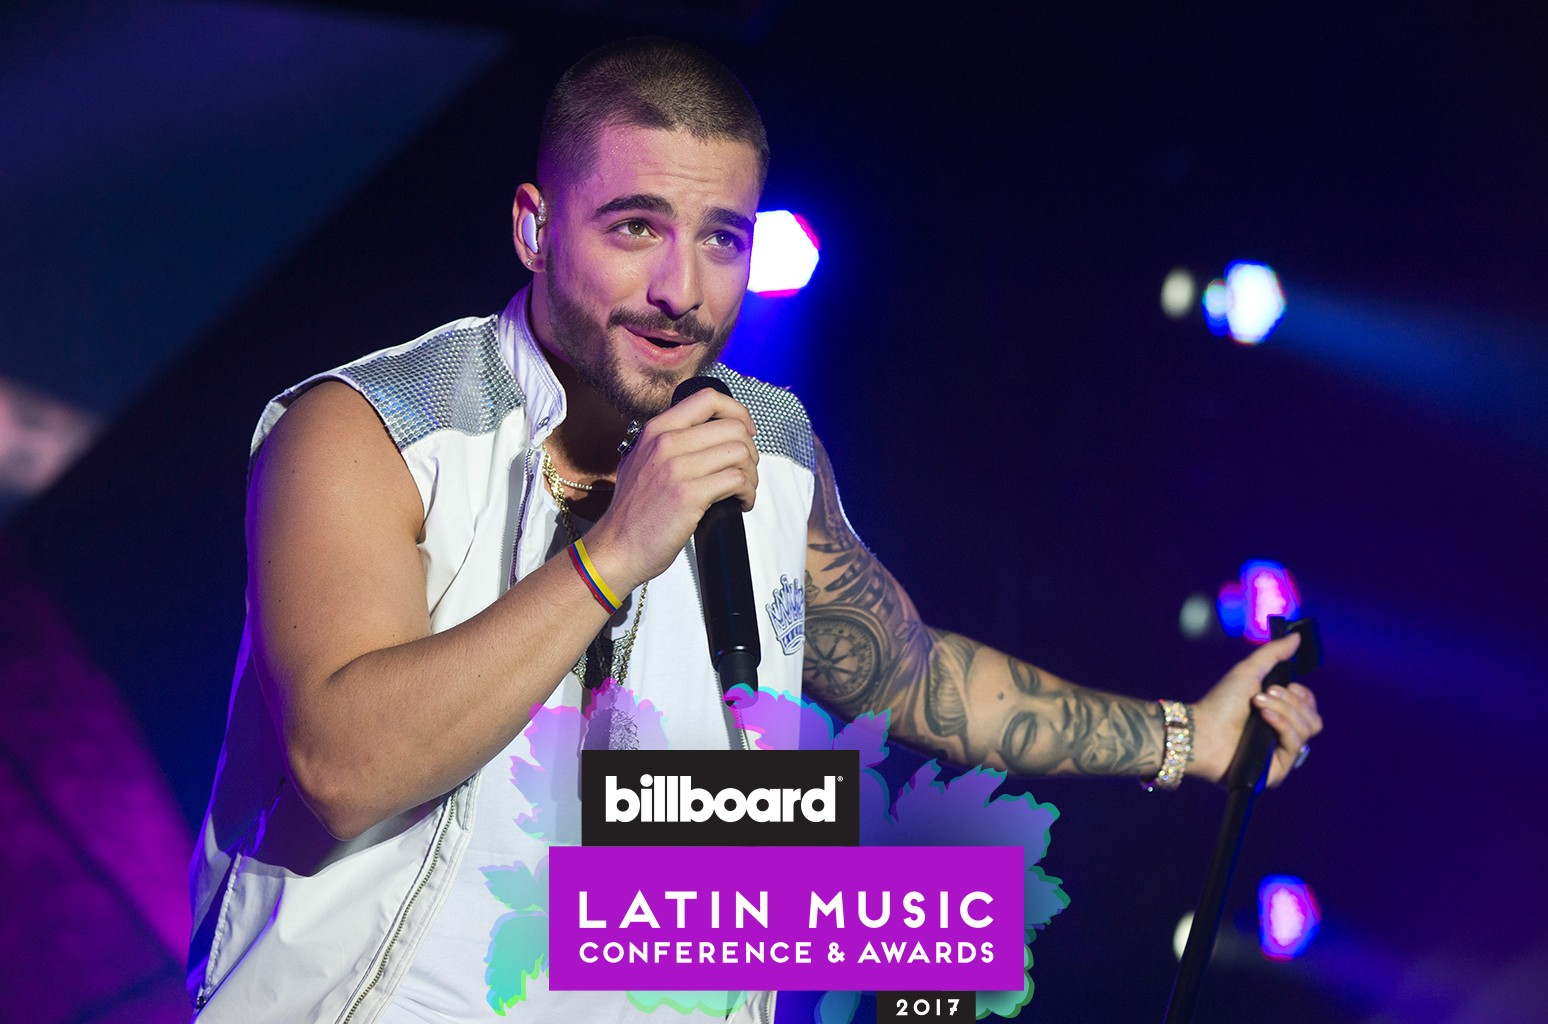 Maluma performs at Sant Jordi Club on Oct. 7, 2016 in Barcelona, Spain.